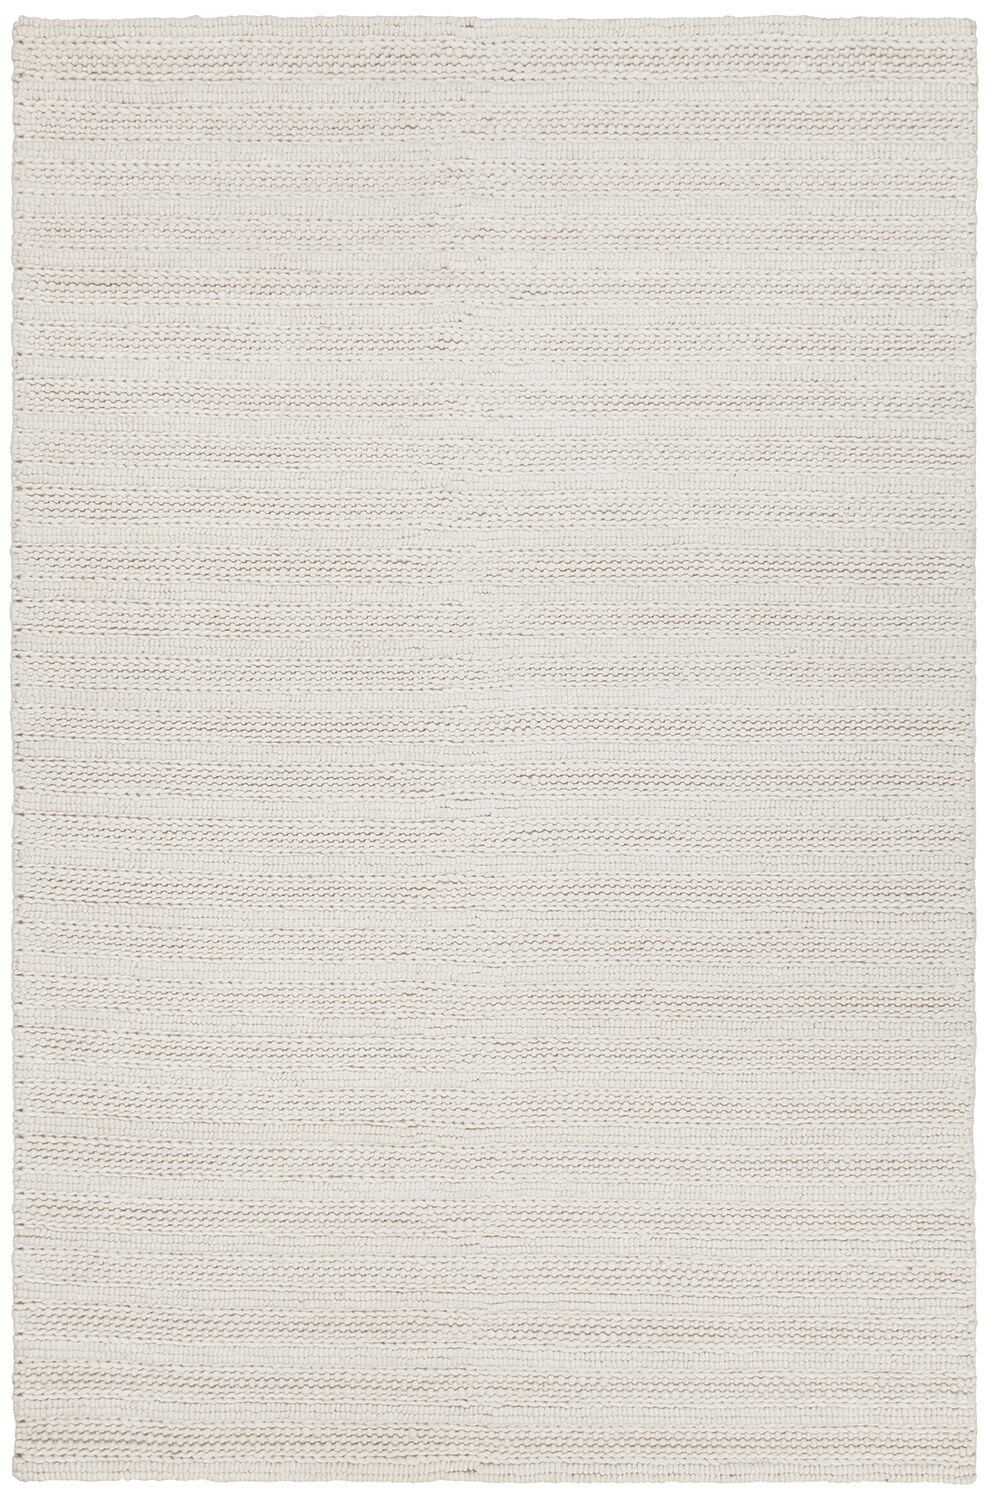 Kite Hand-Woven White Area Rug Rug Size: 5' x 7'6